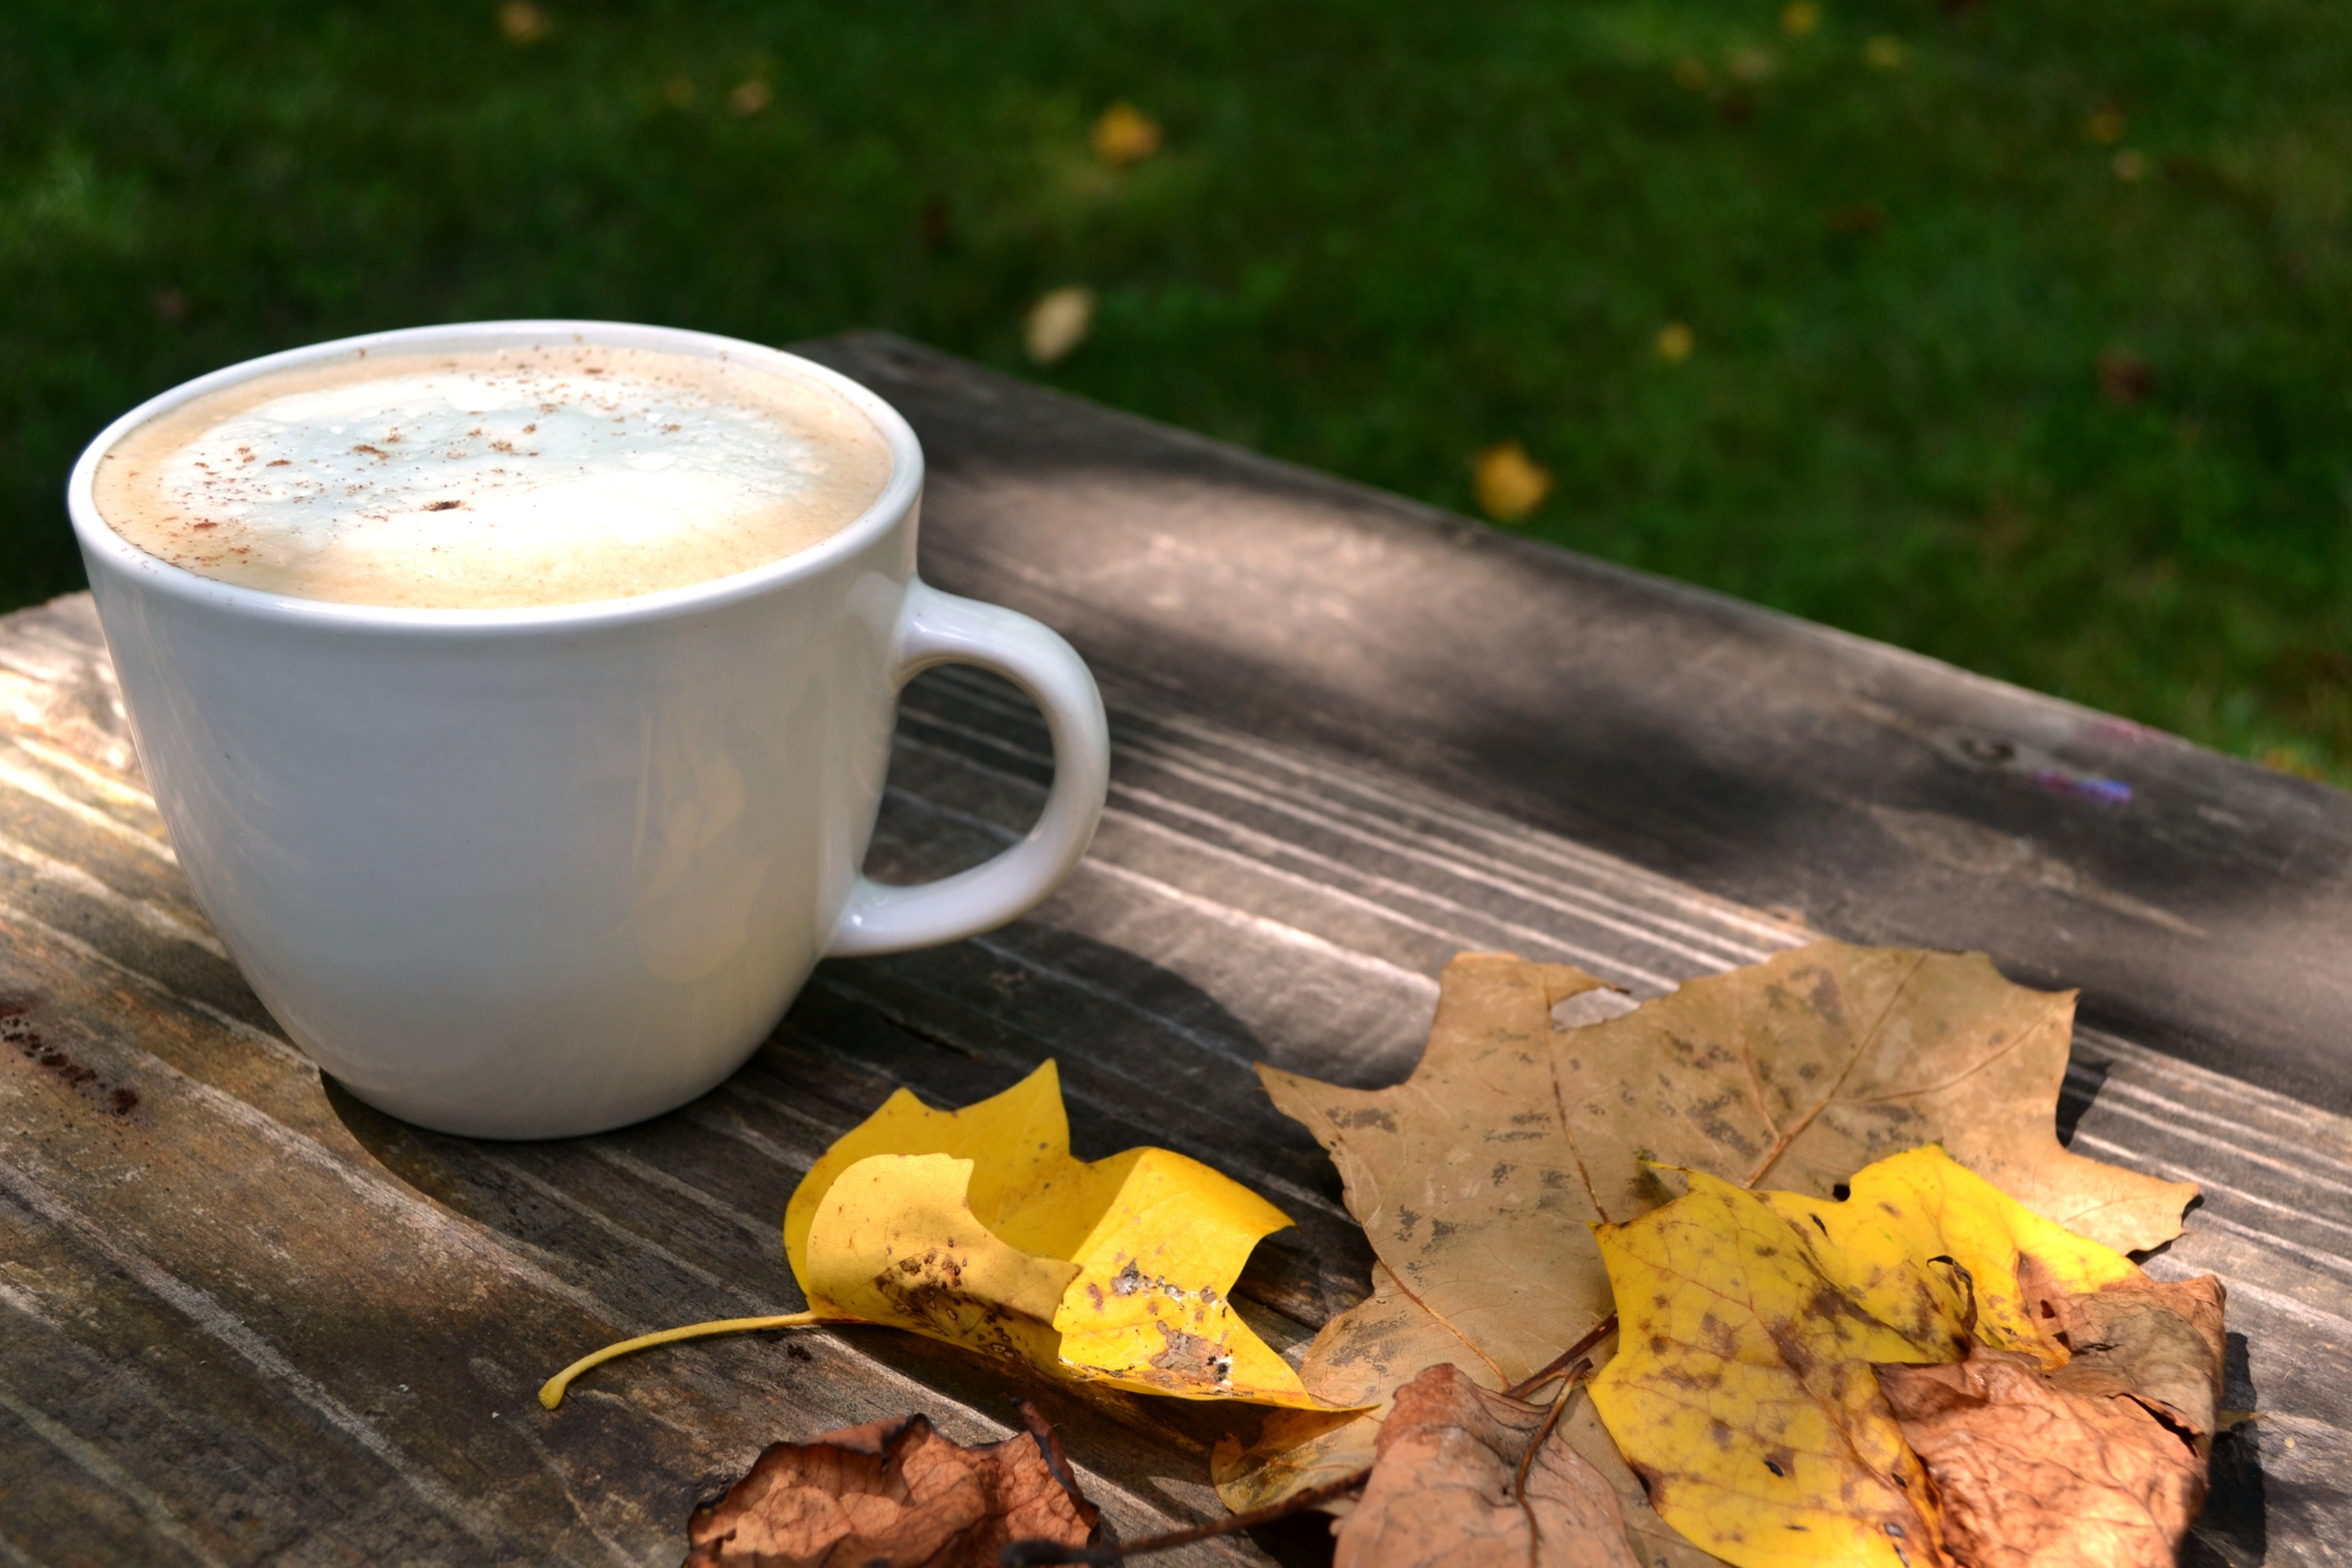 a sugar free pumpkin spice latte on a wooden table with fall leaves